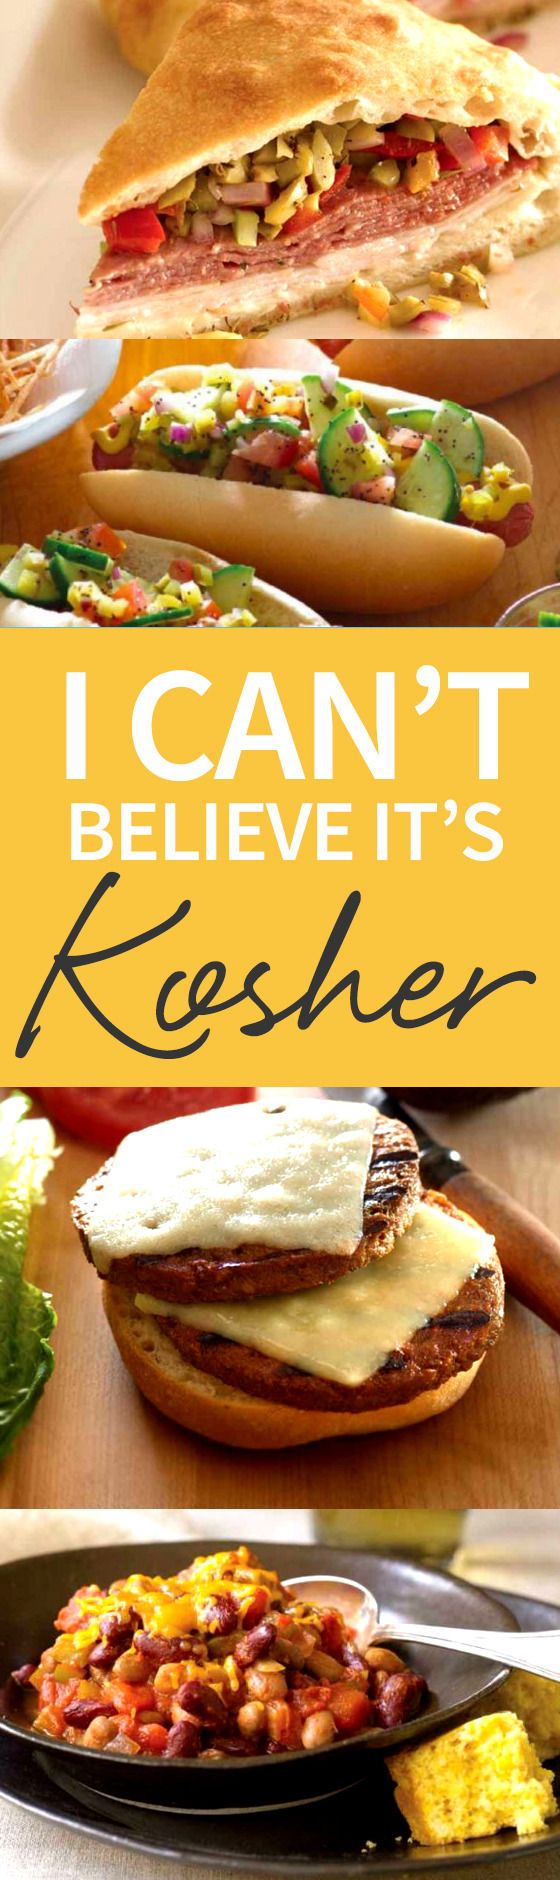 I Can't Believe It's Kosher! The Best Kosher Recreations: Learn how to remake these 4 classic lunch and dinner recipes with kosher in mind. You may find yourself a new favorite! http://www.joyofkosher.com/2016/02/i-cant-believe-its-kosher-the-best-kosher-recreations/